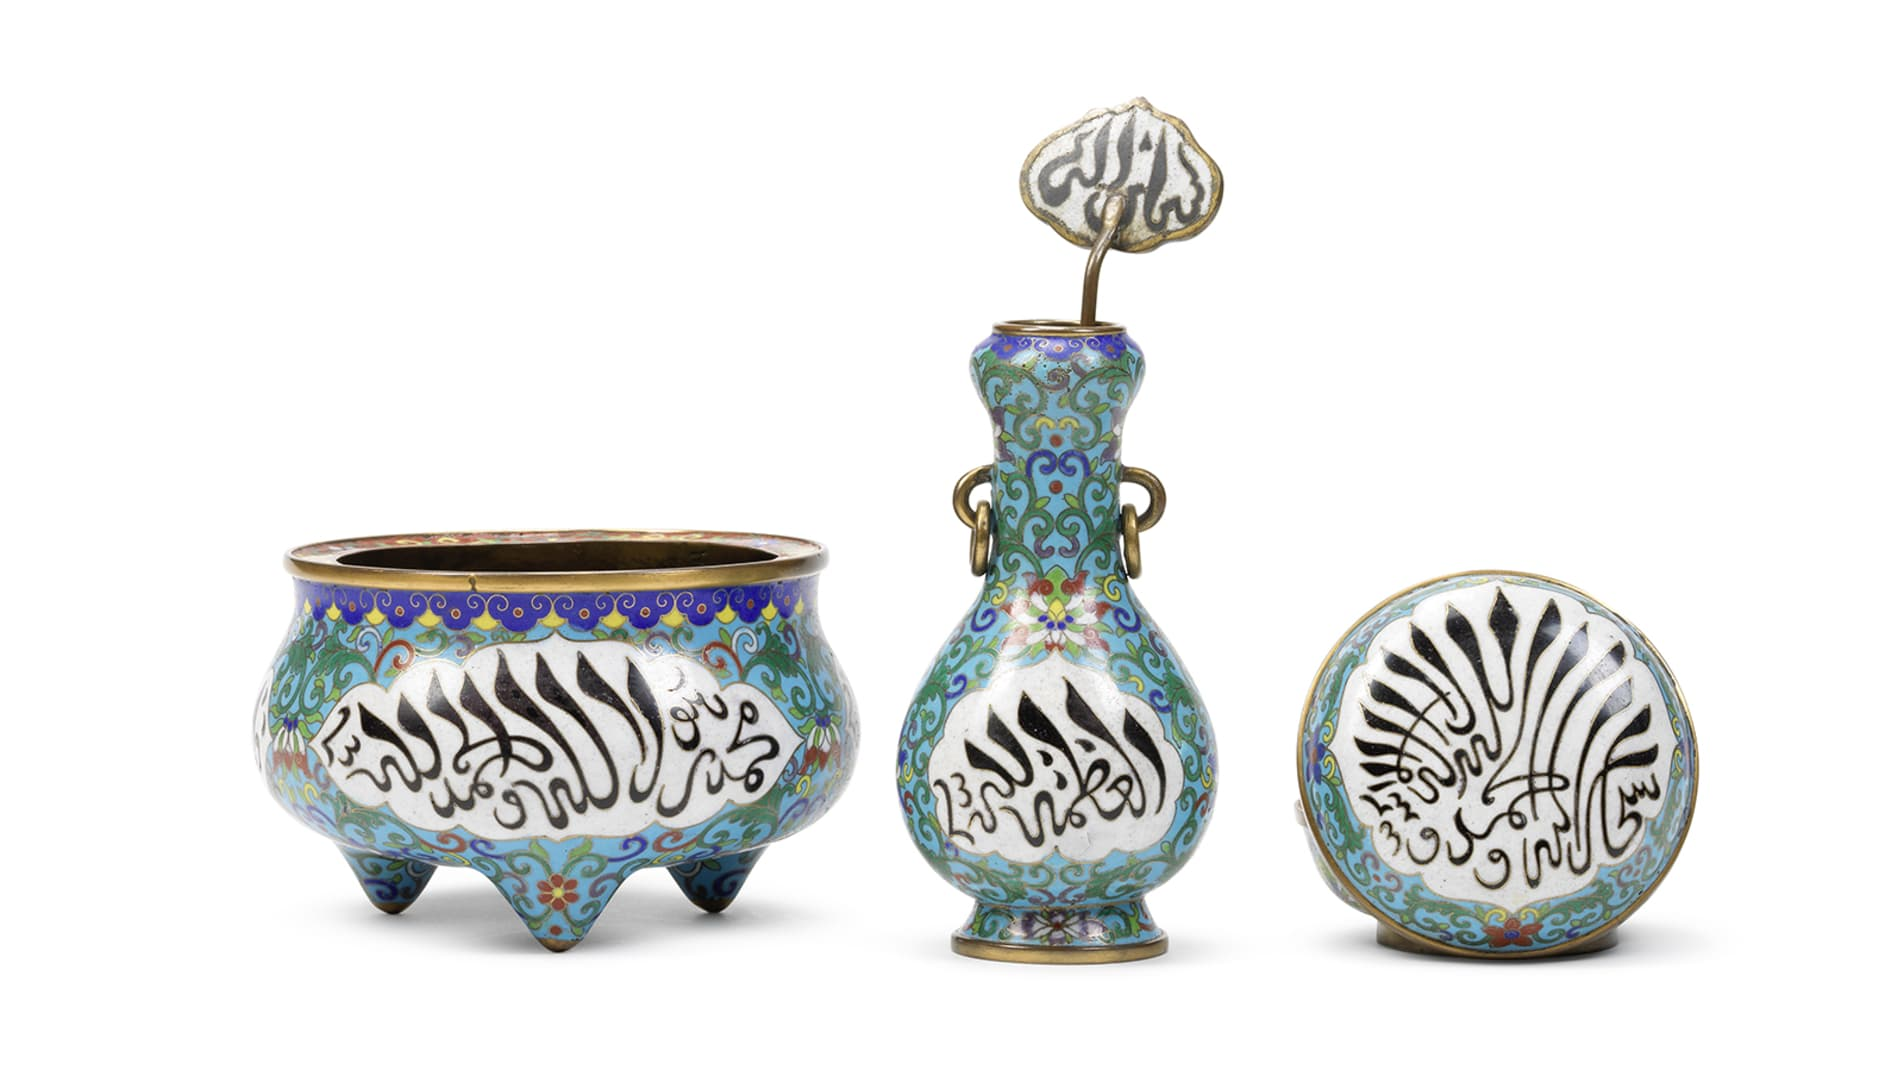 Used for storing and burning incense, this bronze altar set is inscribed with a stylized form of Arabic developed by Chinese Muslims.